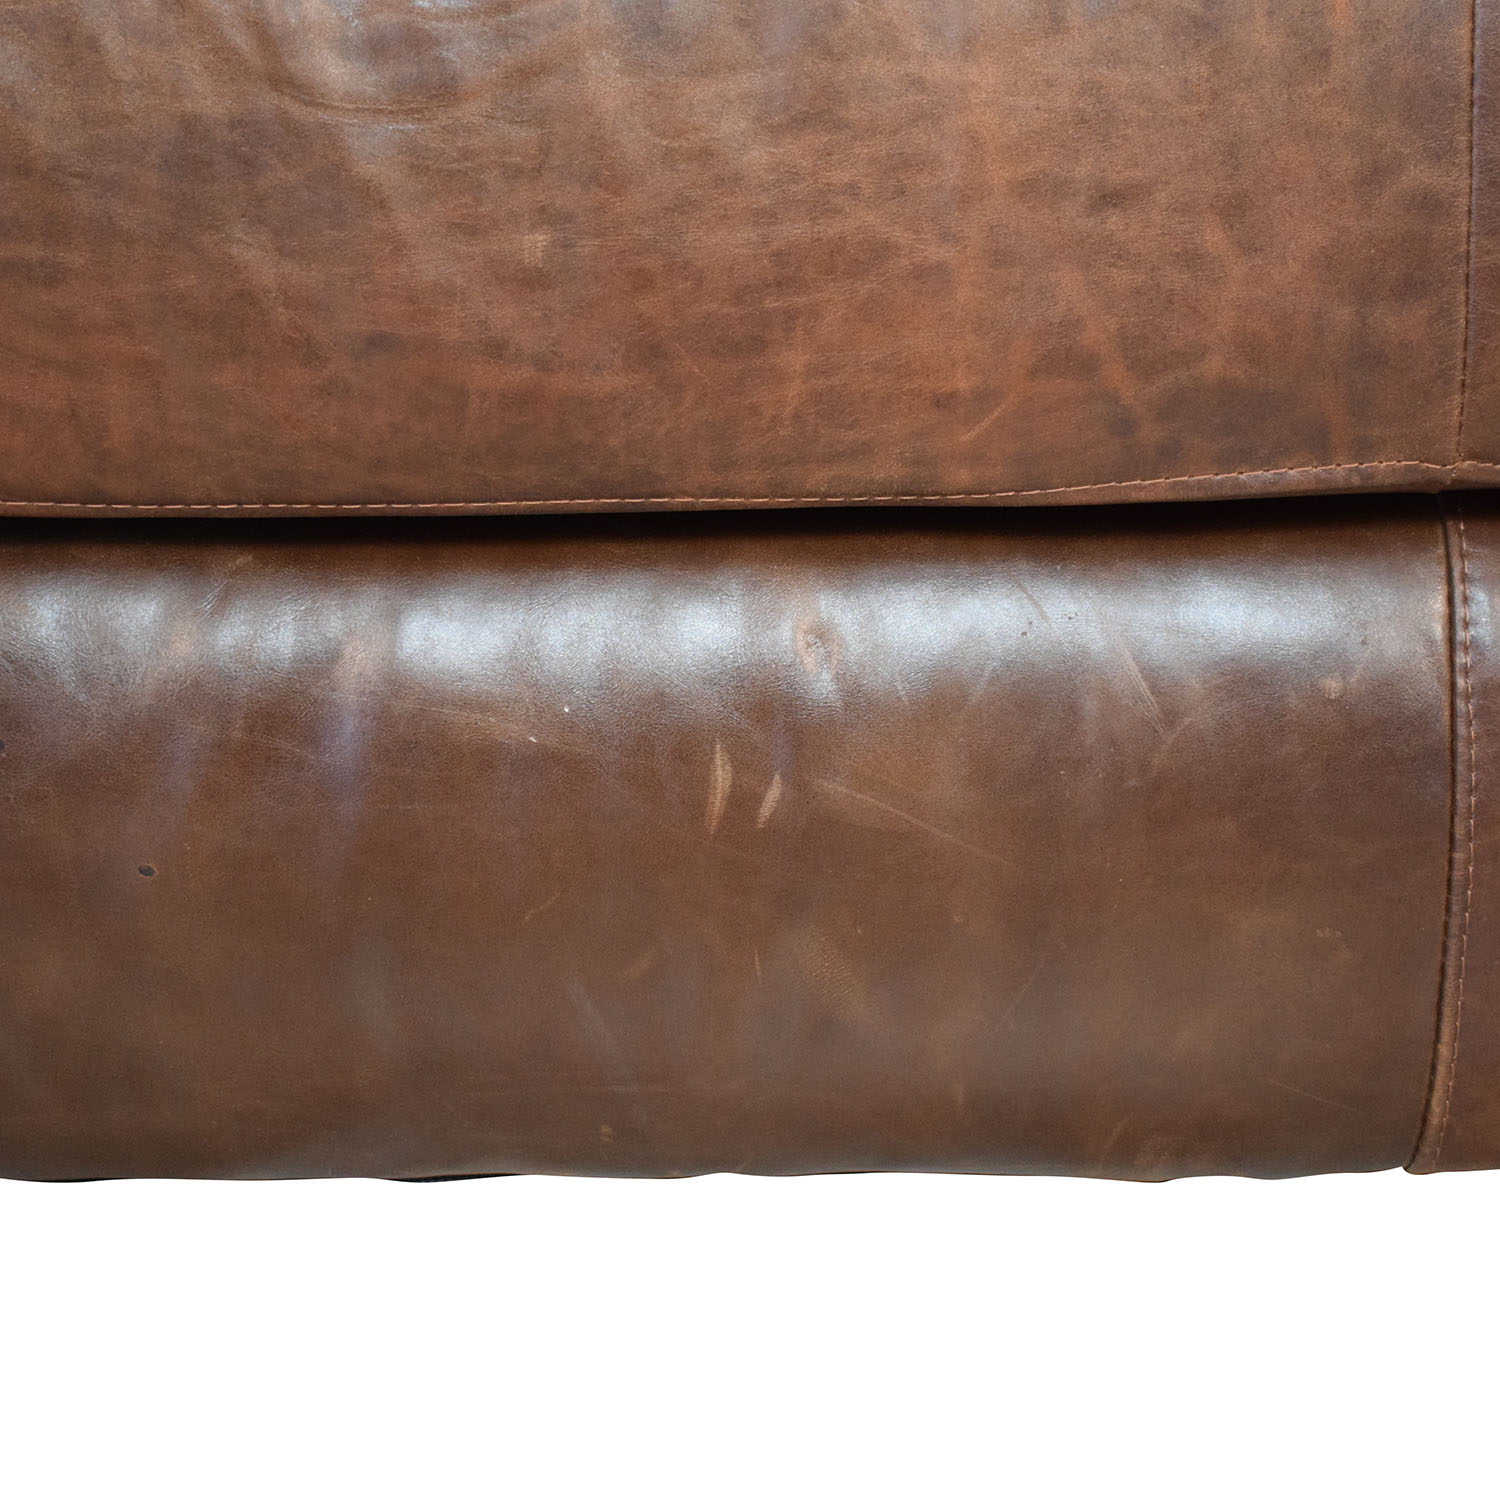 buy ABC Carpet & Home ABC Carpet & Home Leather Cocktail Ottoman online